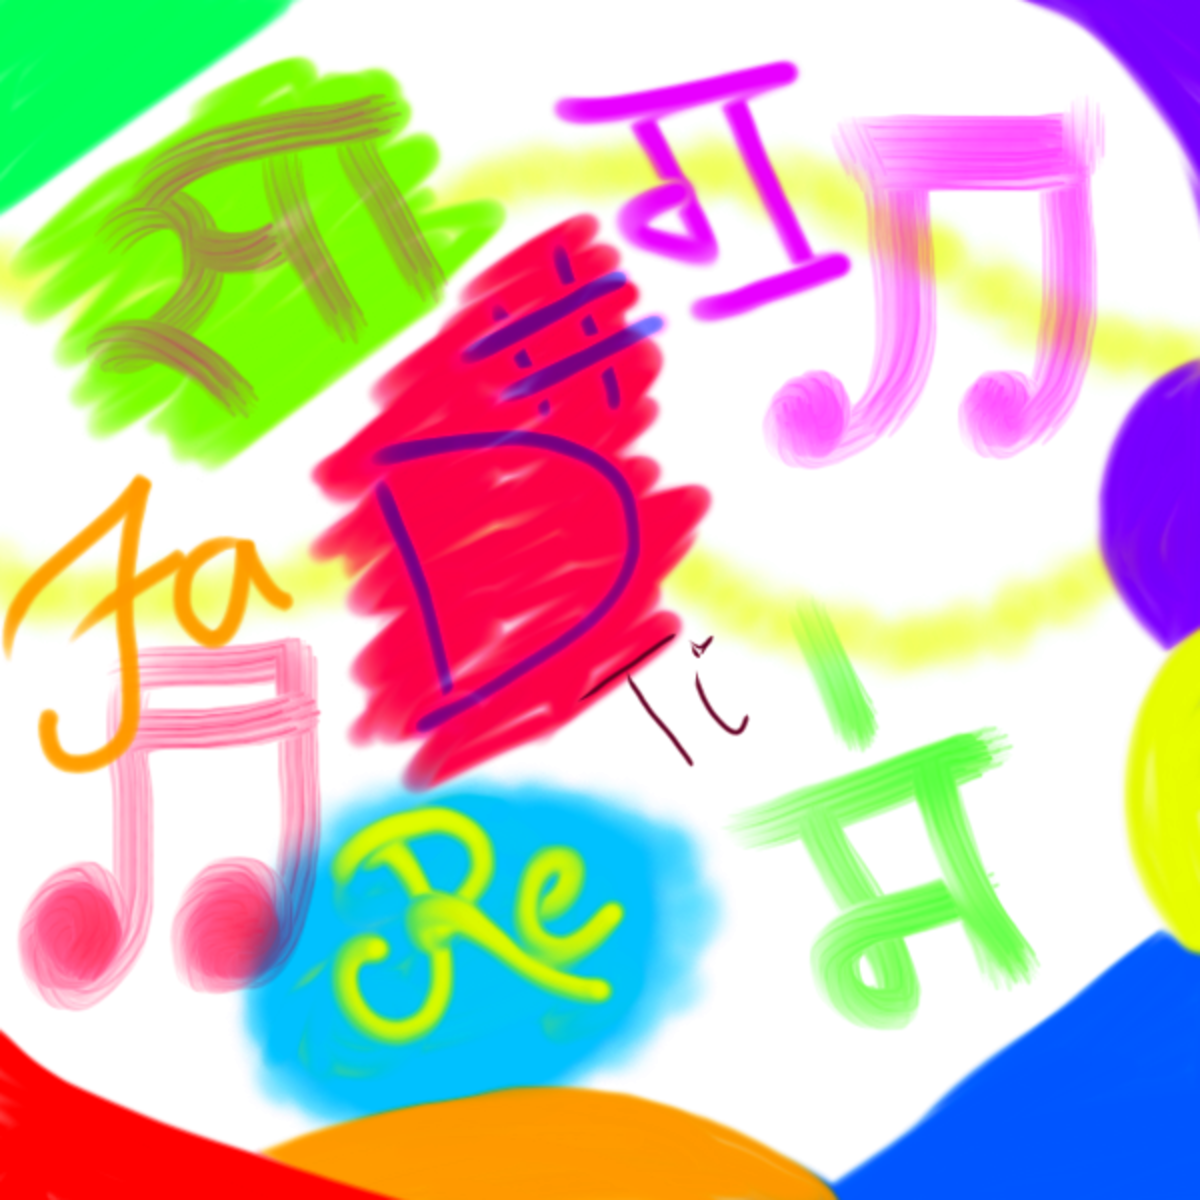 Music adds colorful joys to life